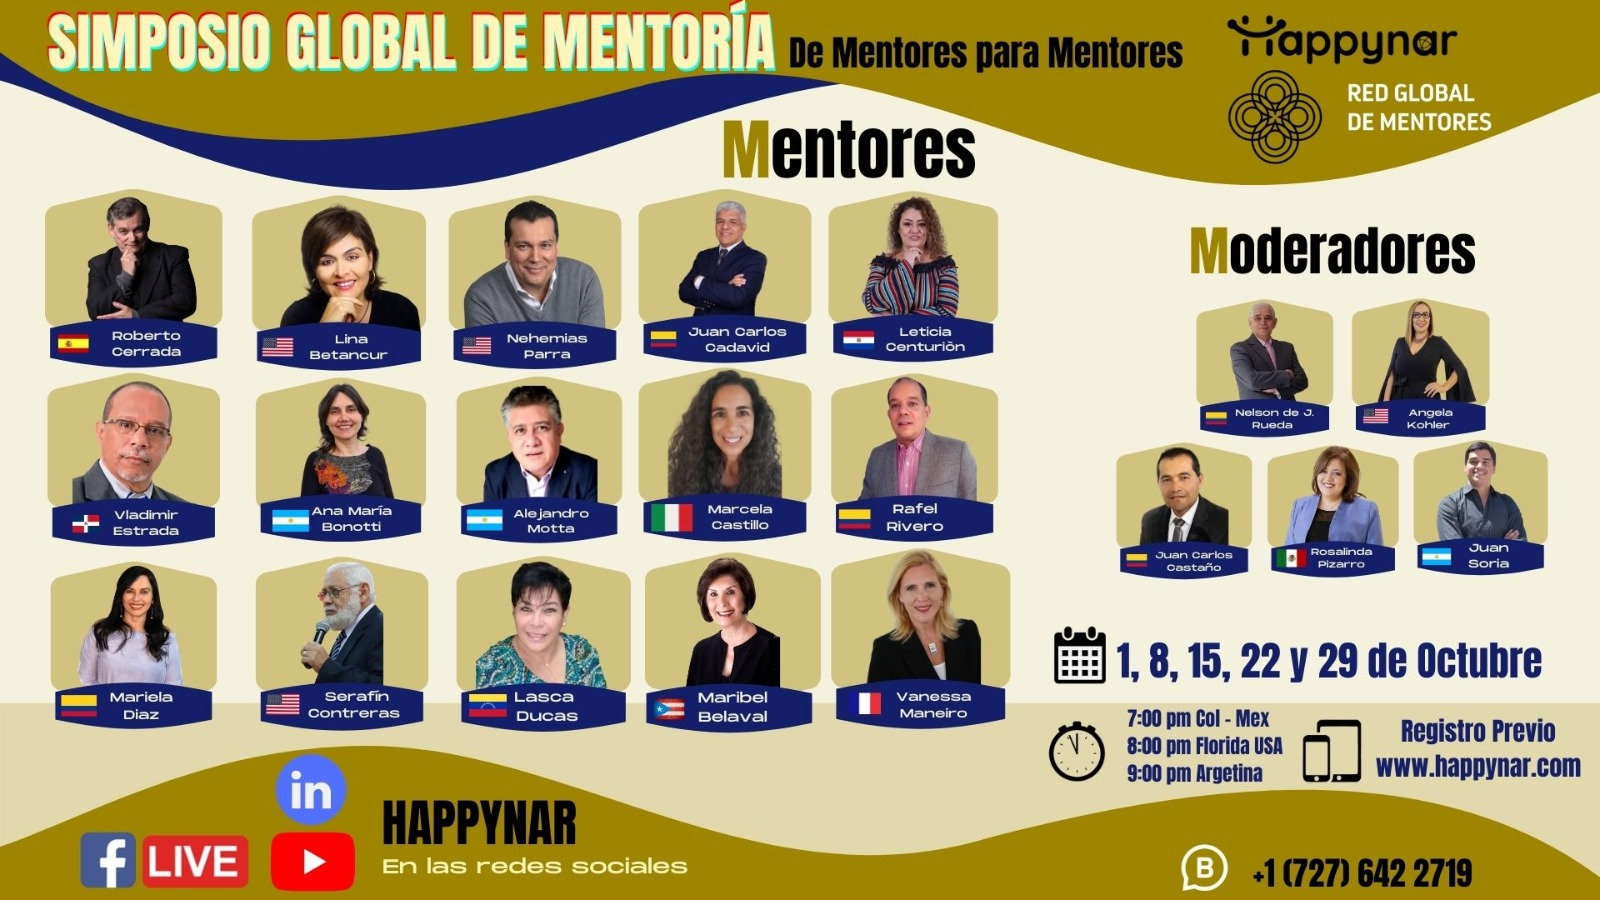 SIMPOSIO GLOBAL DE MENTORIA